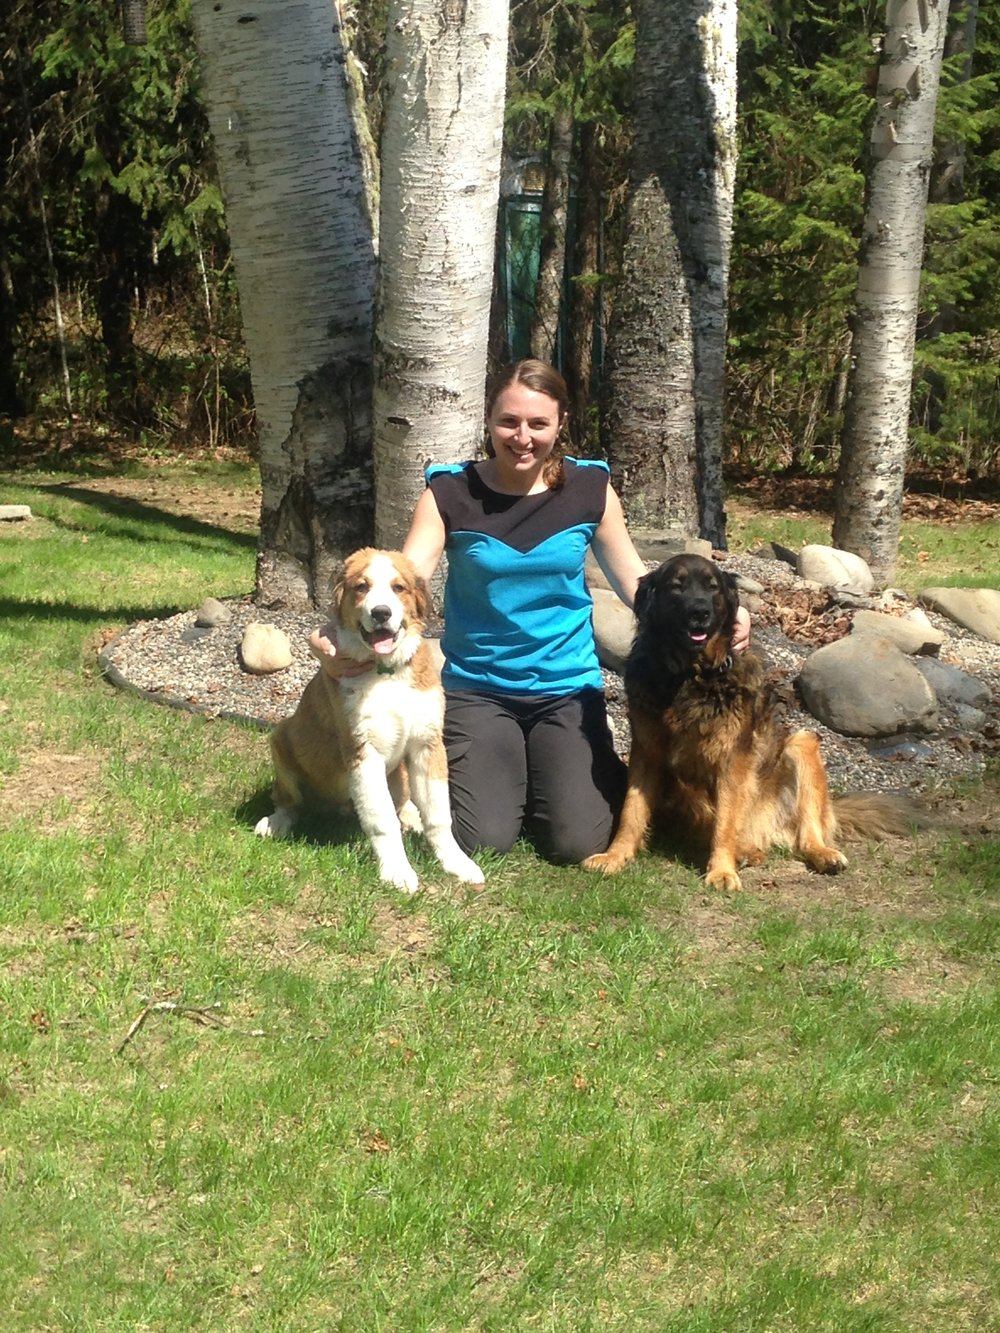 Dr. Fuller and her dogs George and Charlie